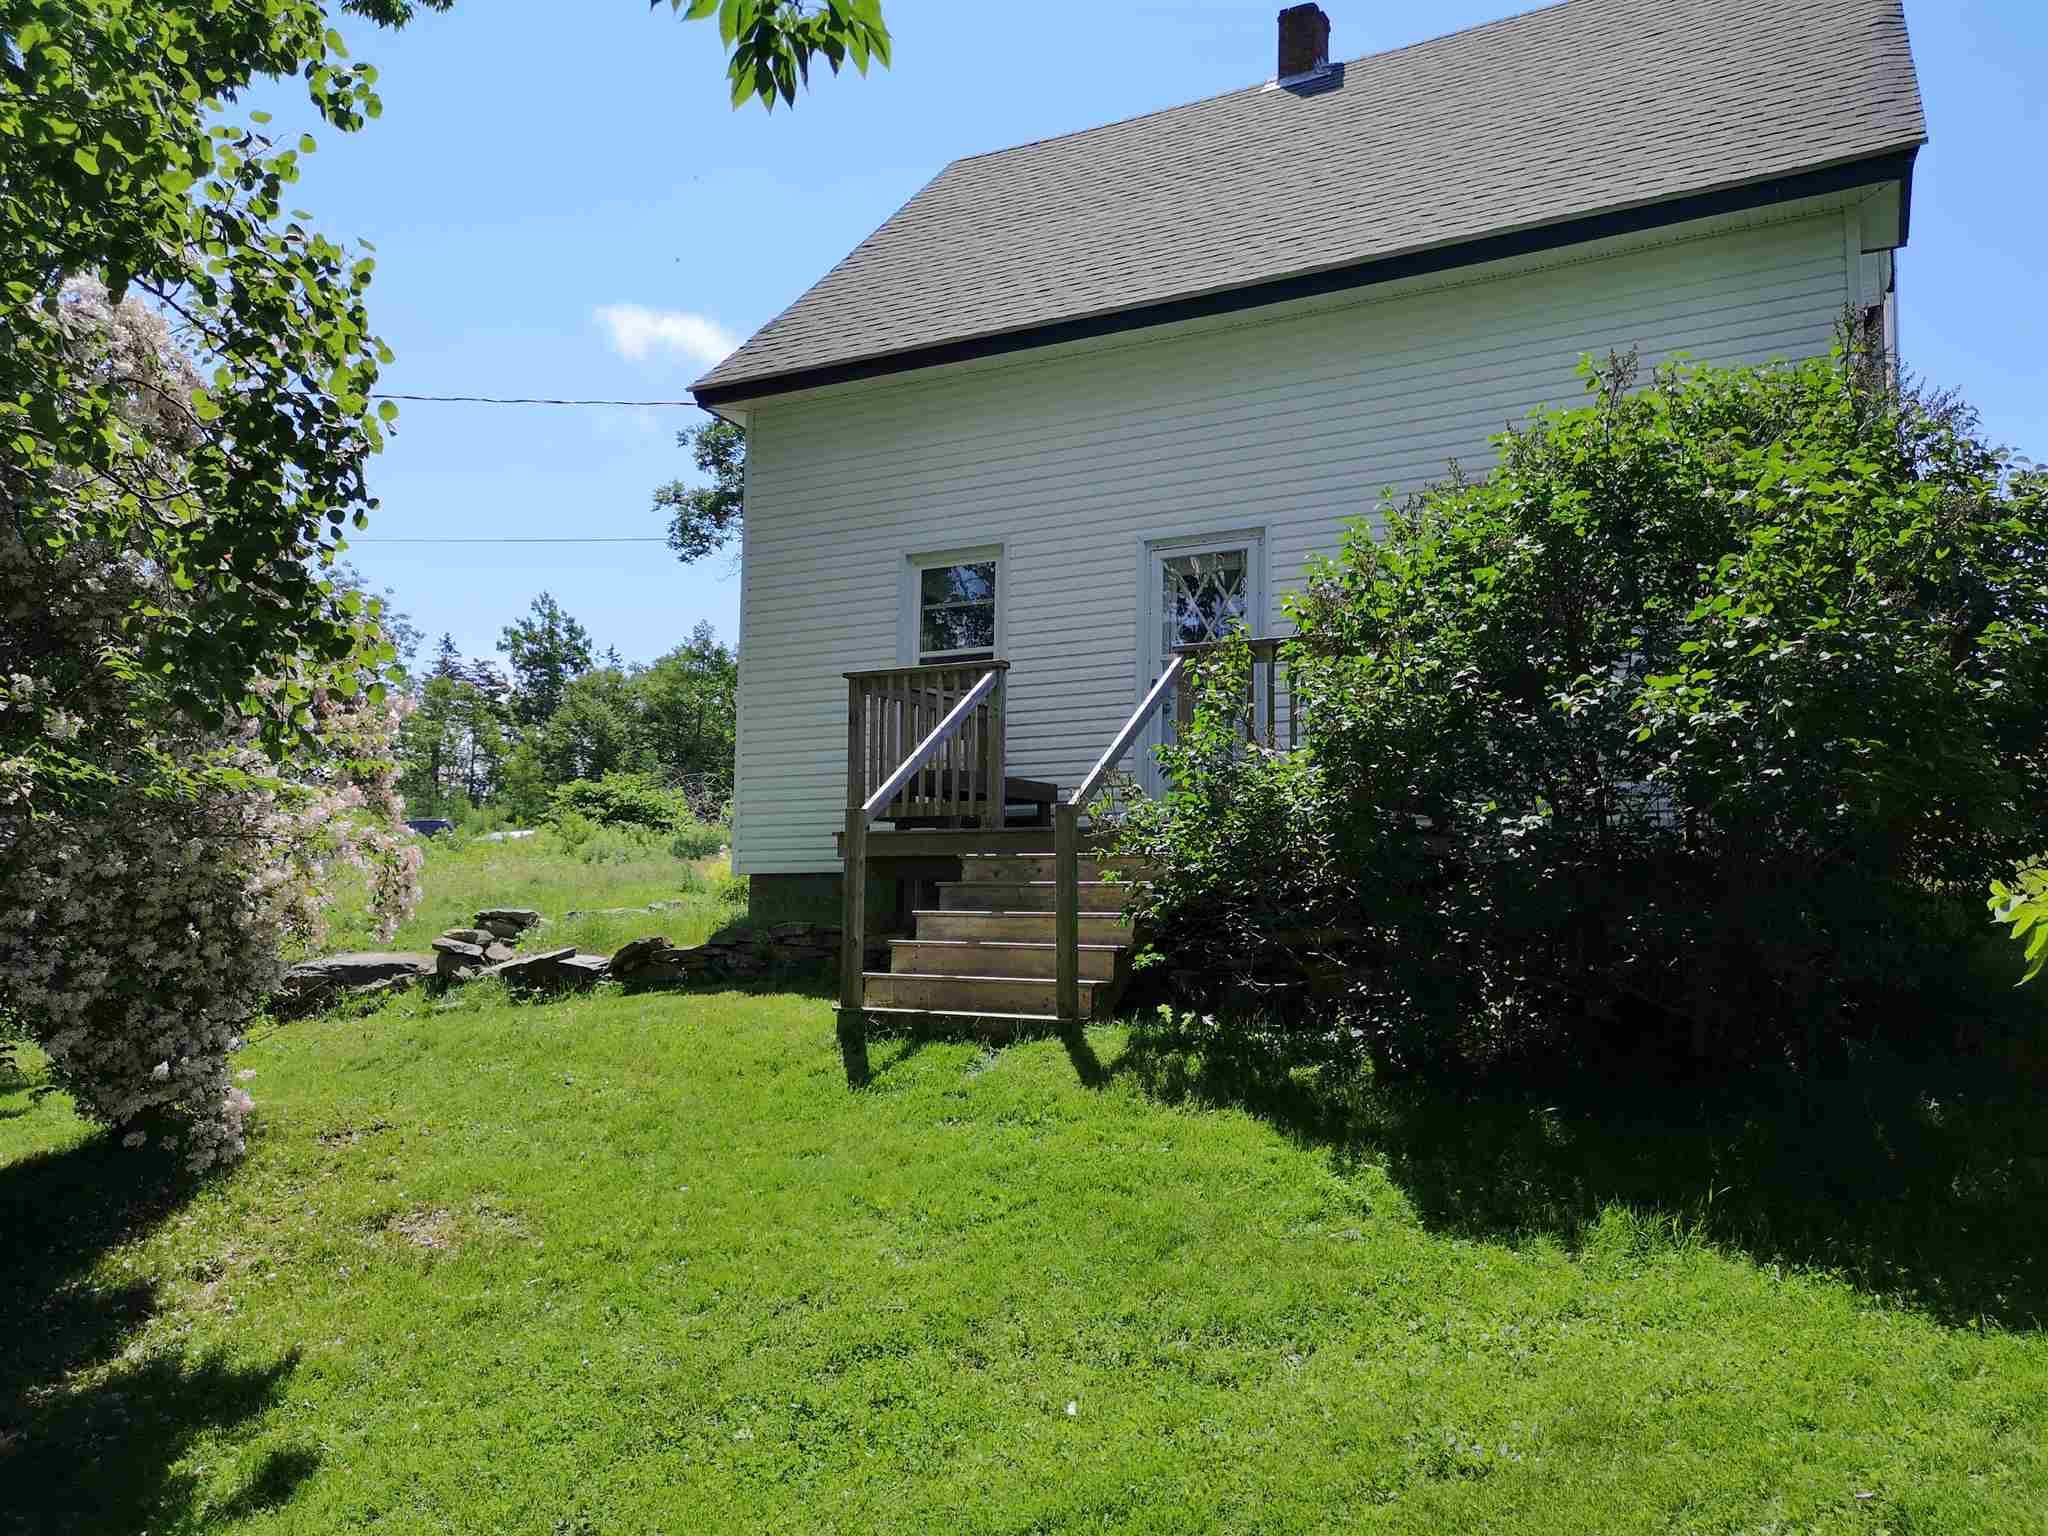 Main Photo: 420 EAST RIVER Road in Sheet Harbour: 35-Halifax County East Residential for sale (Halifax-Dartmouth)  : MLS®# 202104643